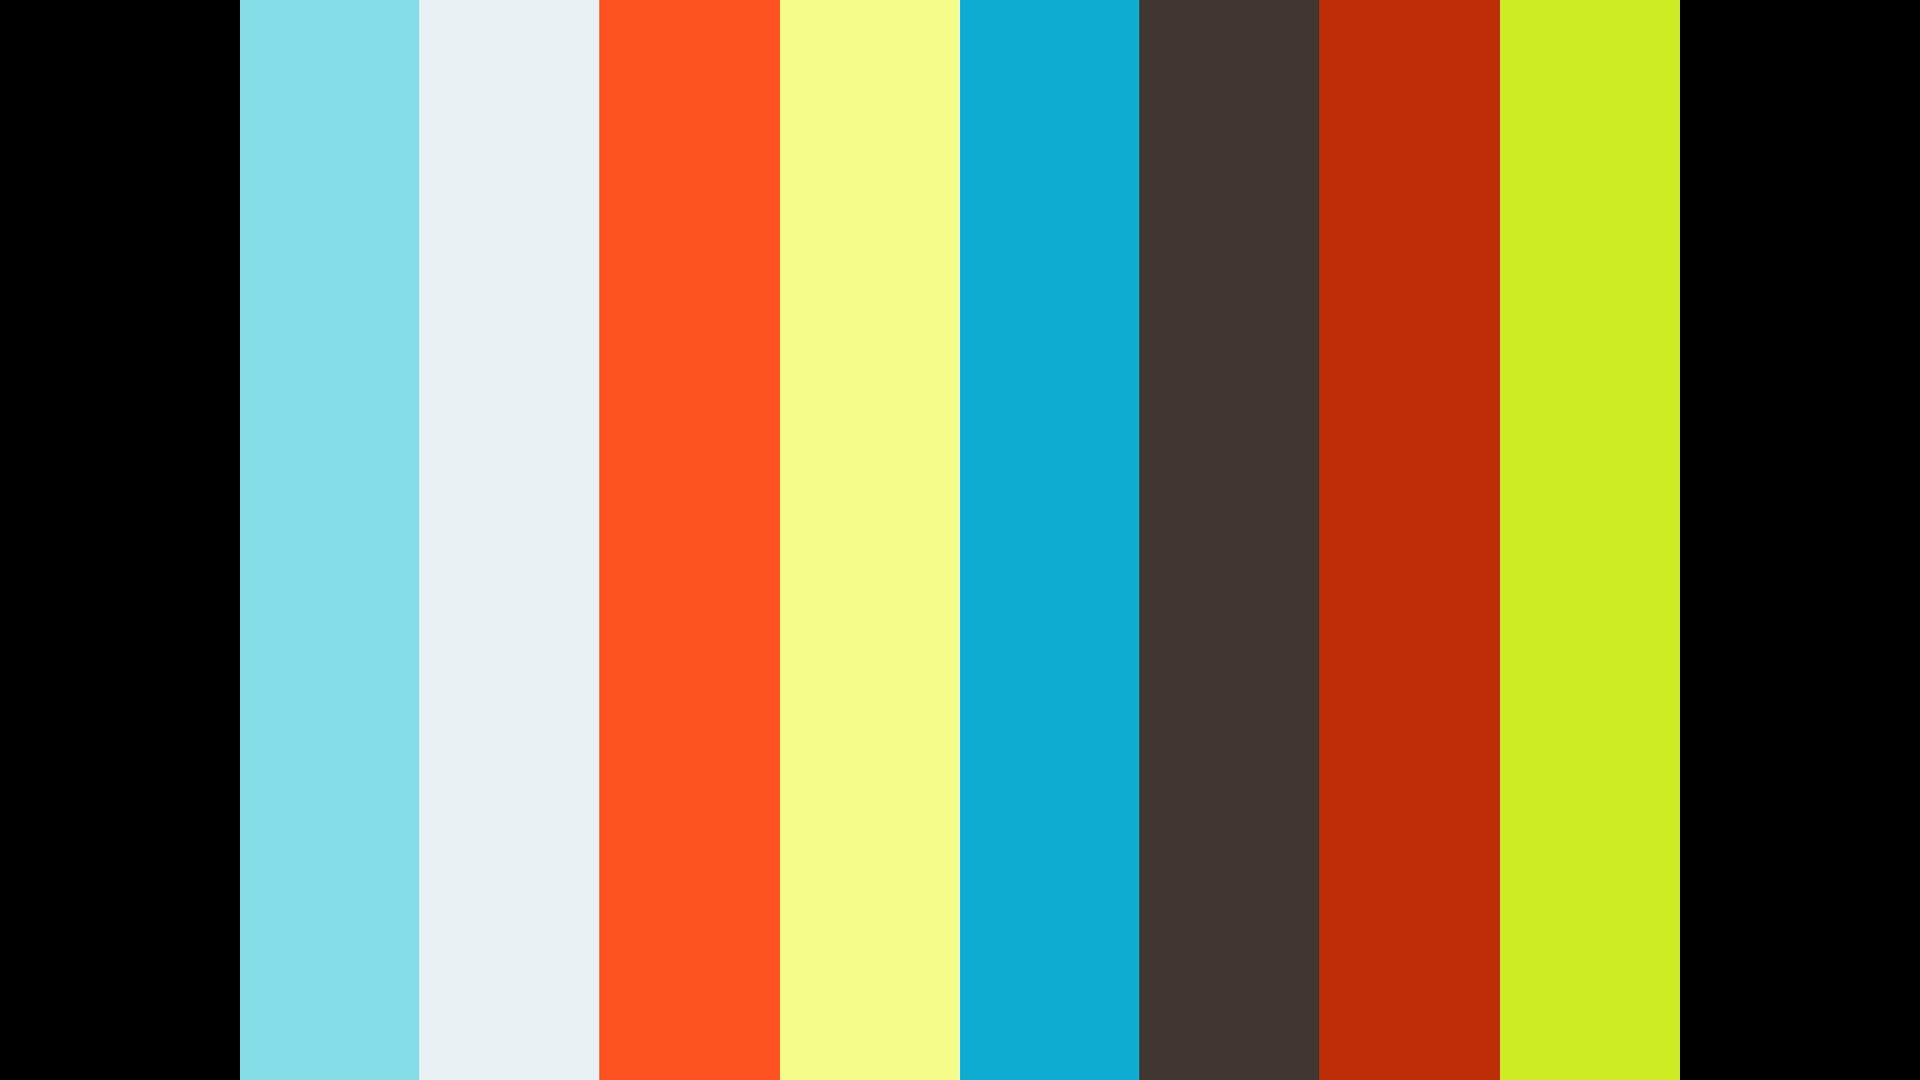 Intellectum_tedx